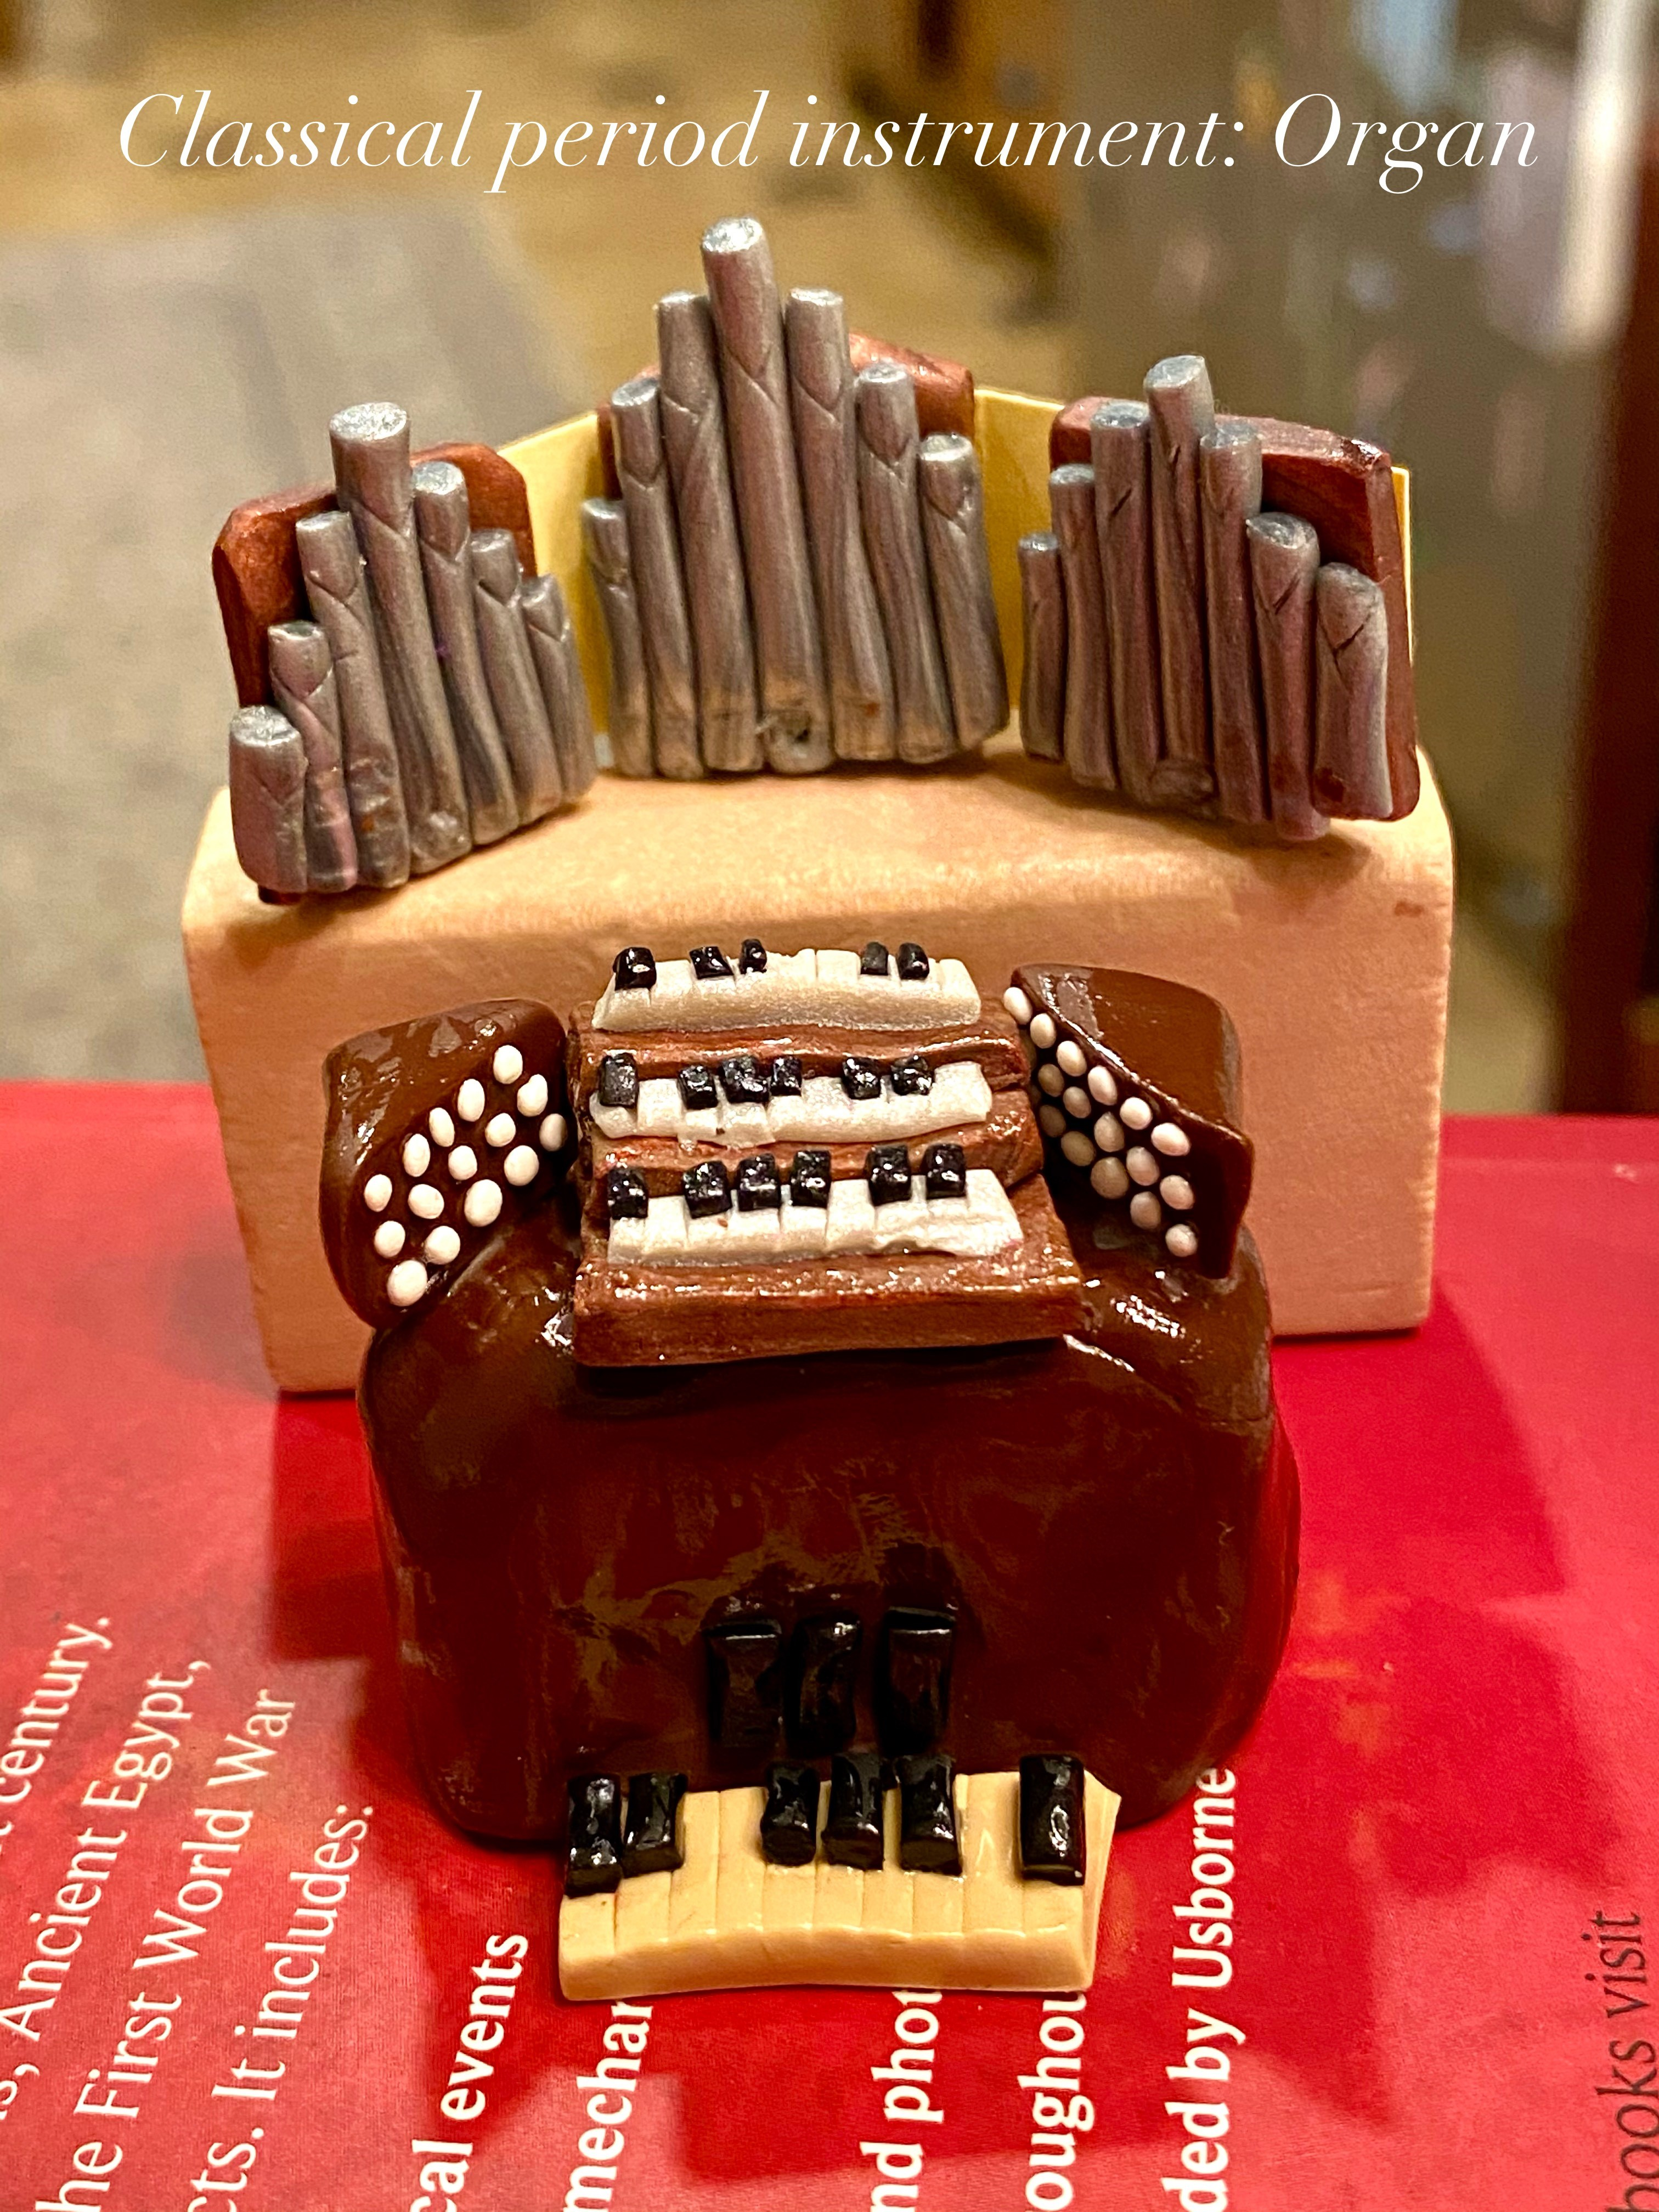 Organ Model made out of clay